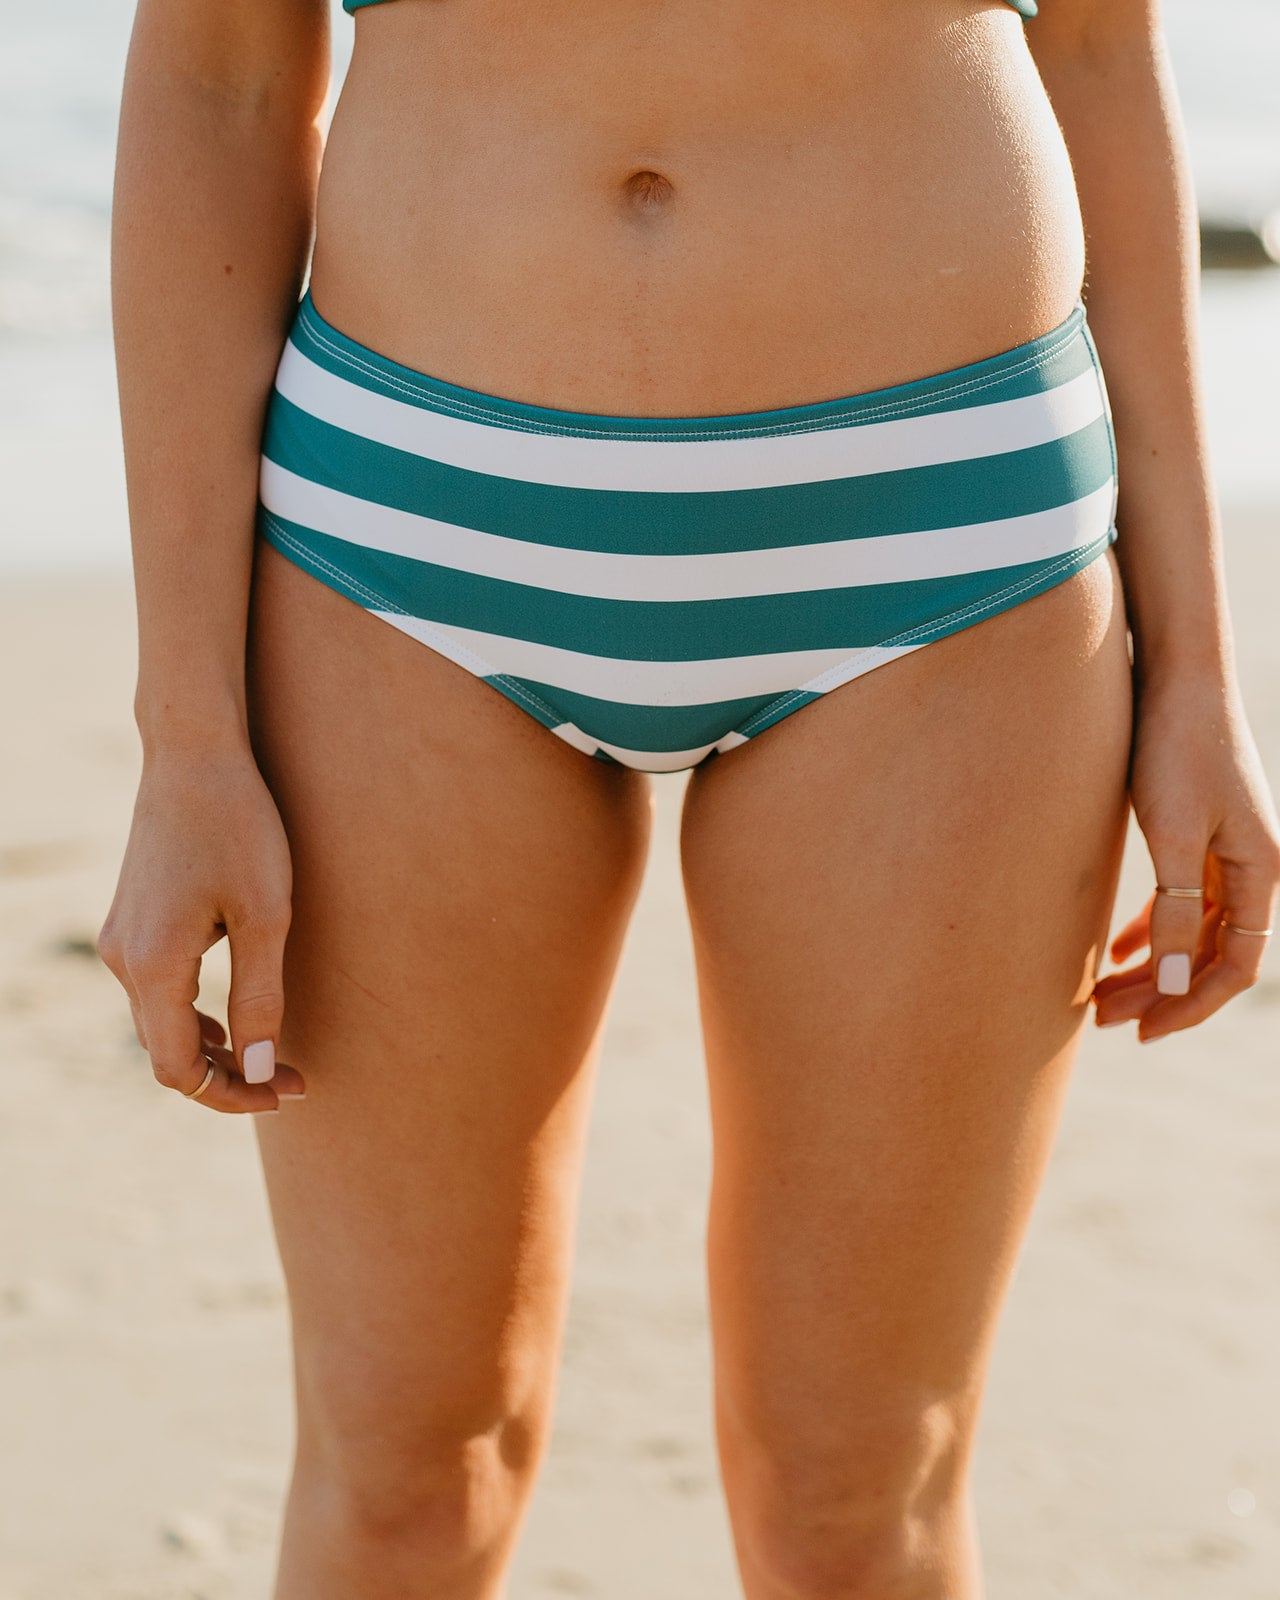 PINK DESERT LOW WAIST SWIM BOTTOM IN JADE STRIPE